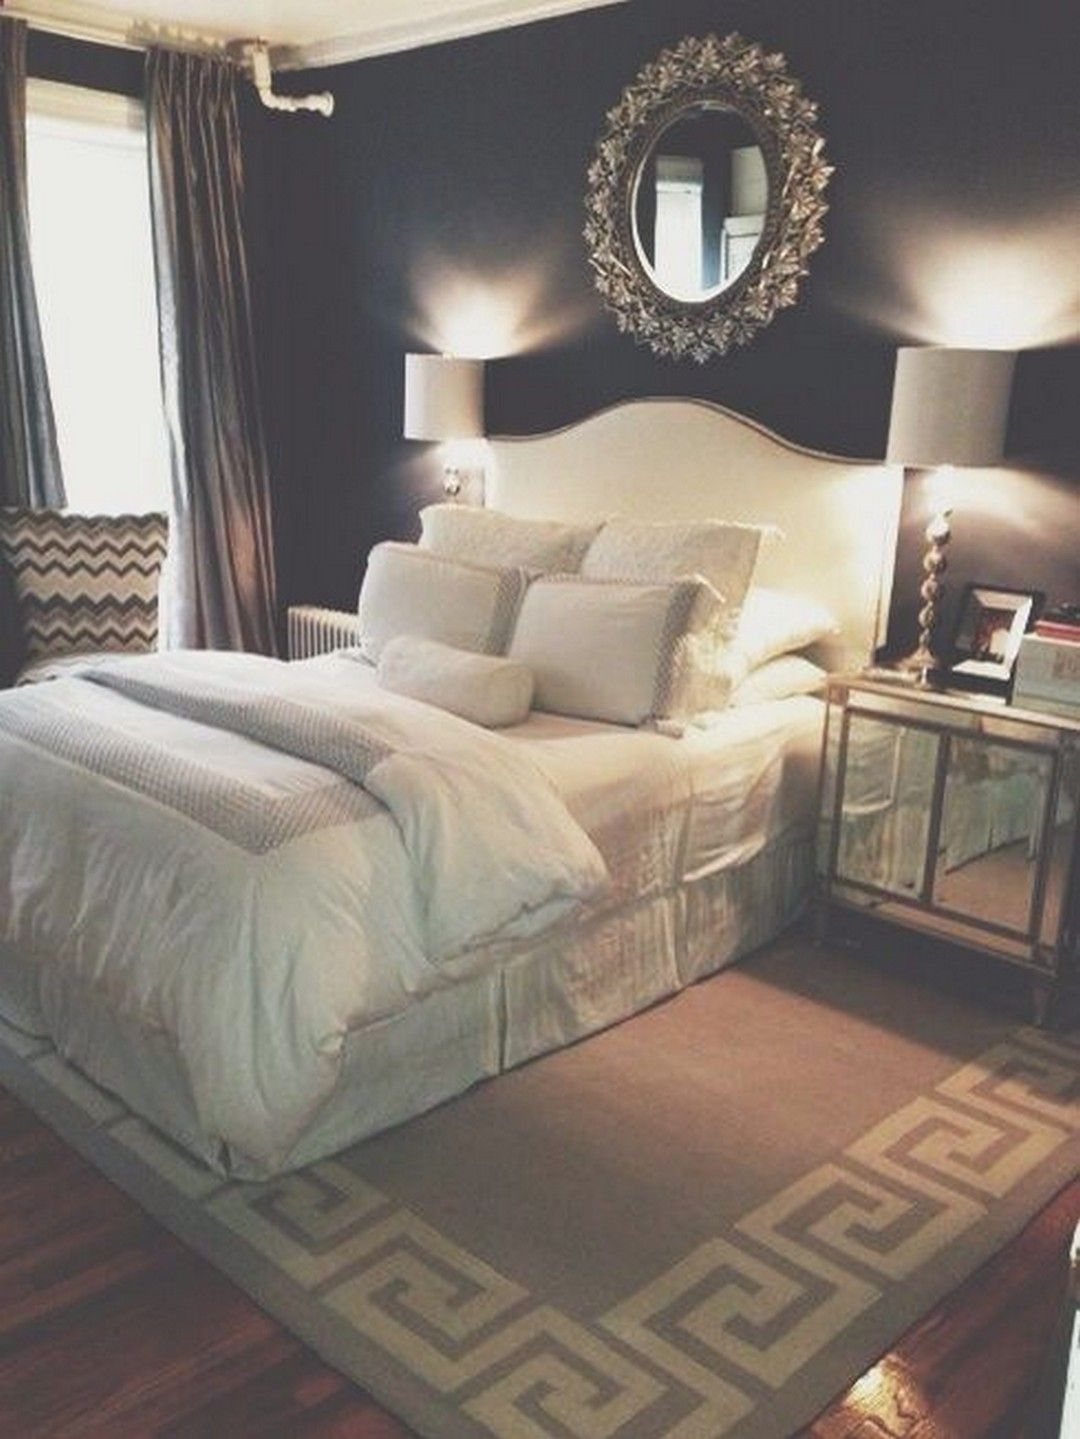 90+ Best Ideas to Make Your Bedroom Extra Cozy and Romantic ...